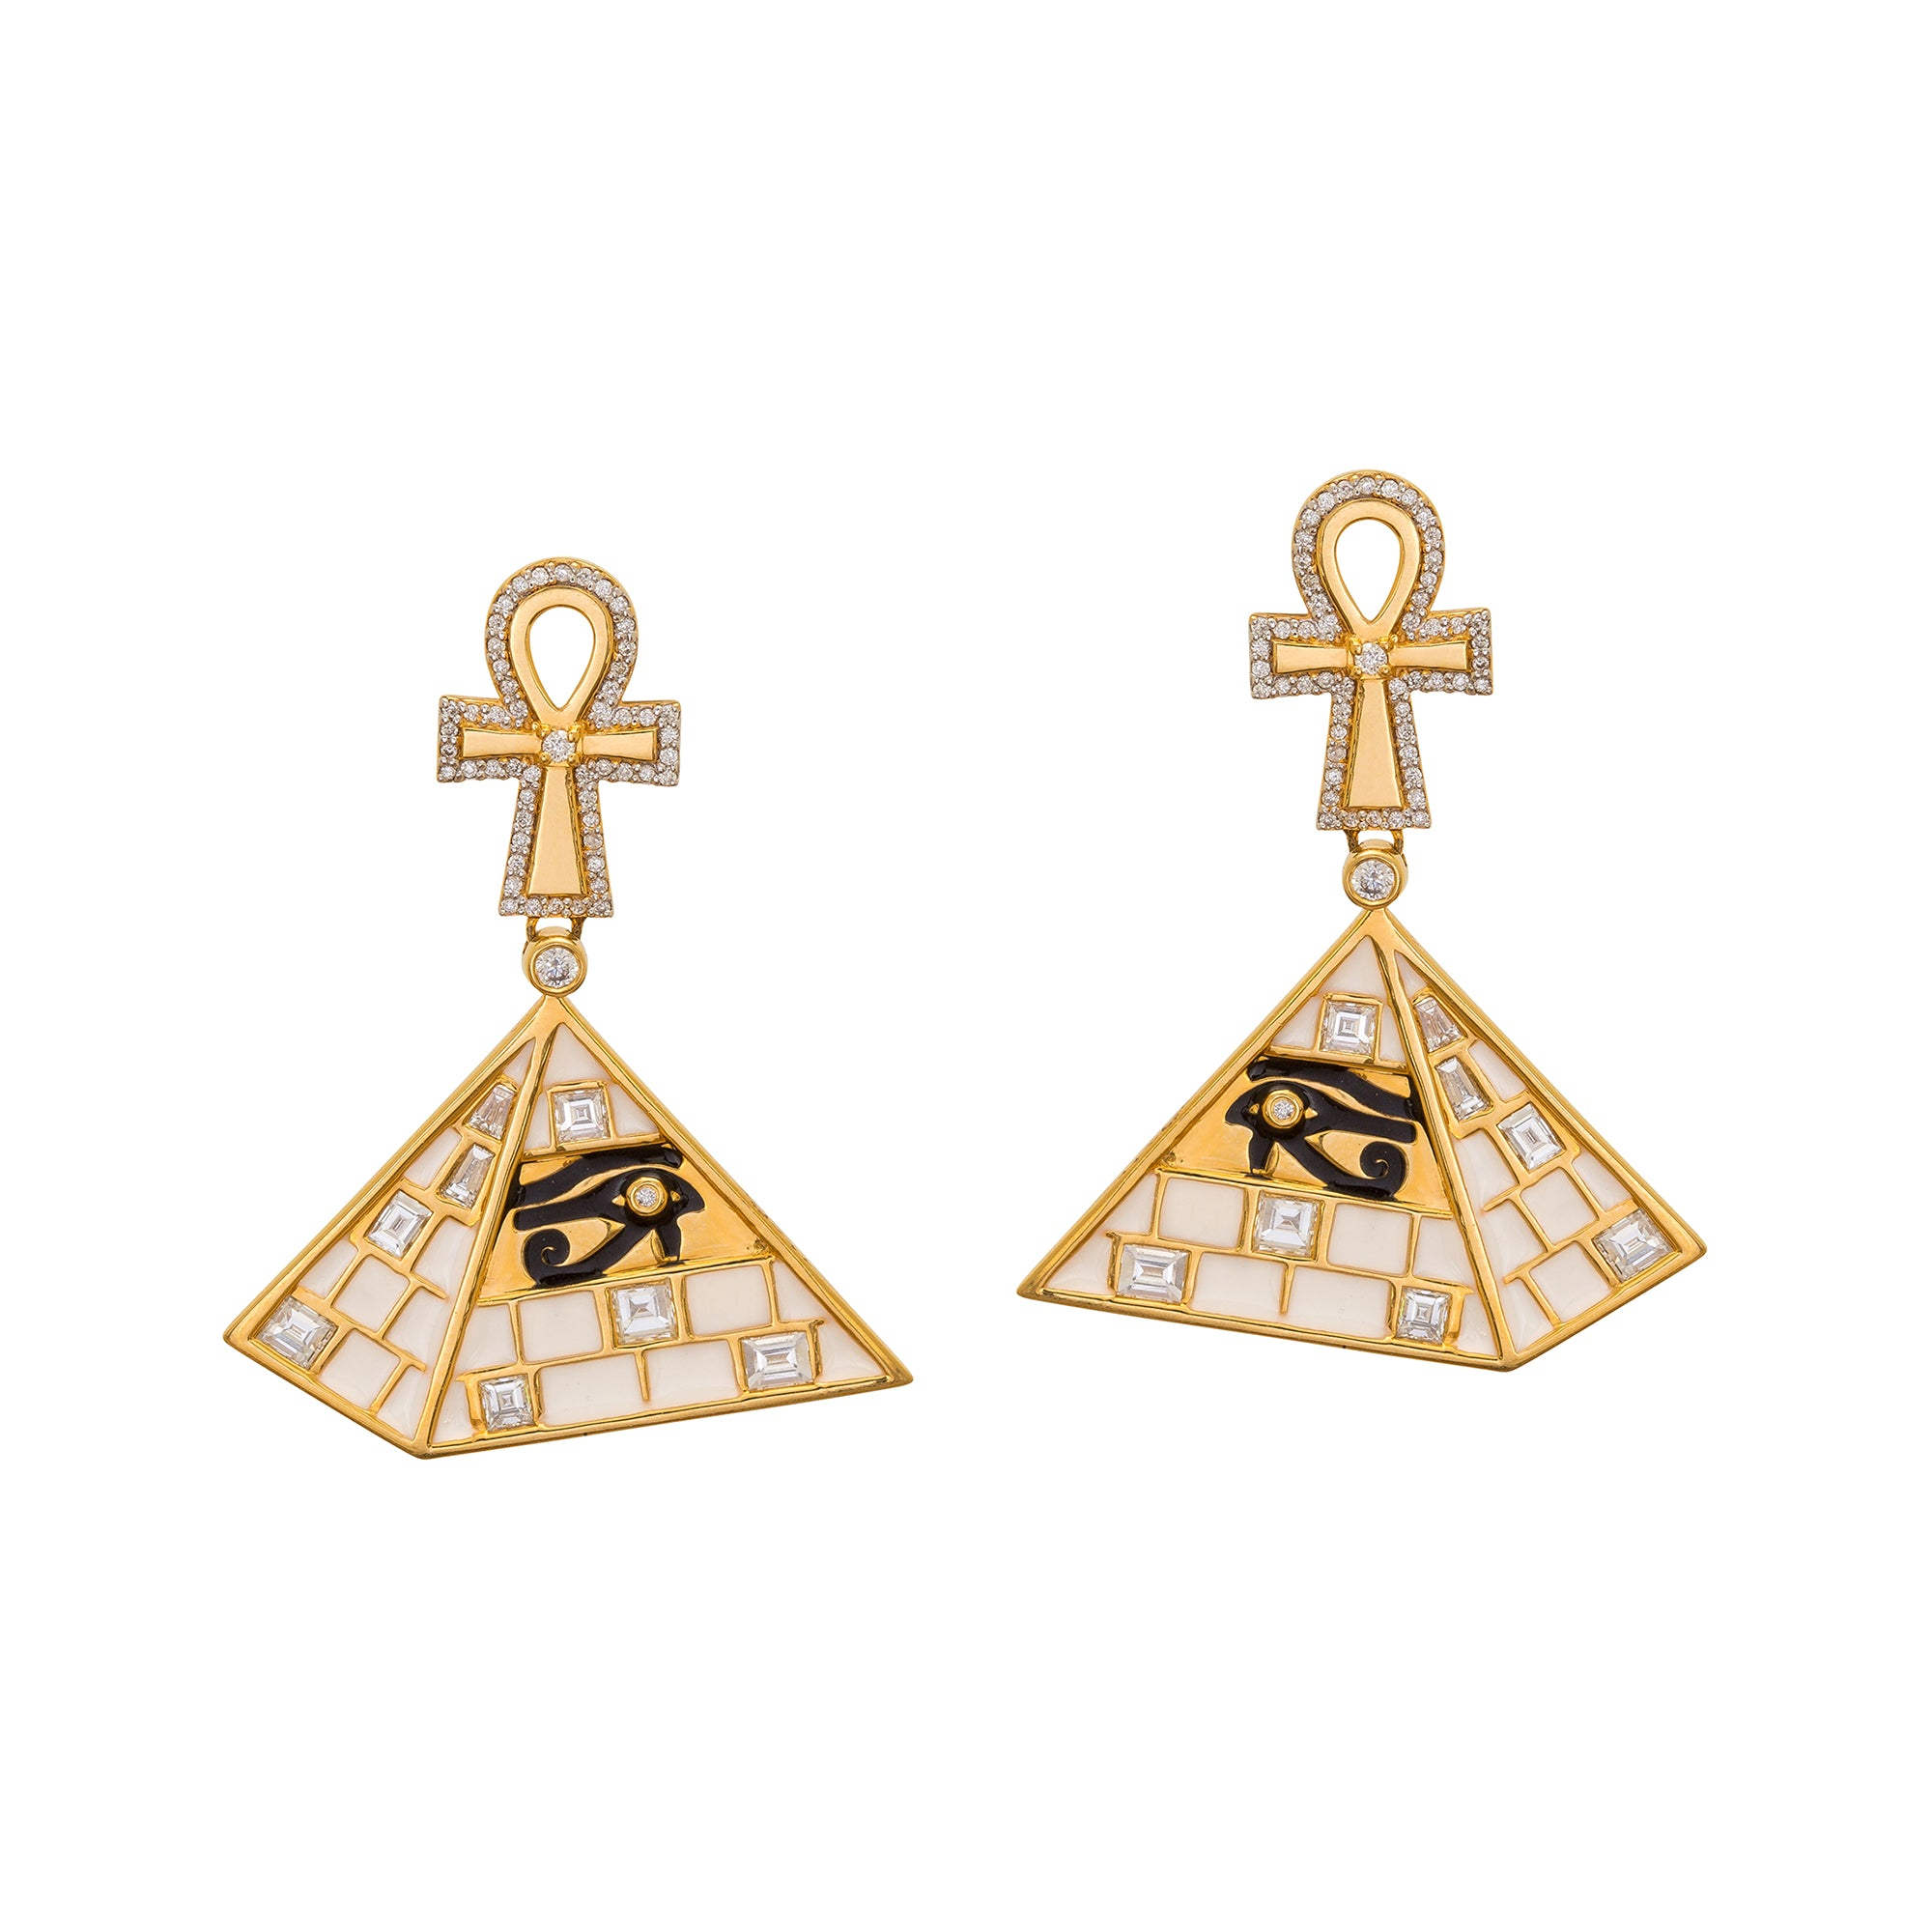 Pyramid Earrings by Buddha Mama for Broken English Jewelry